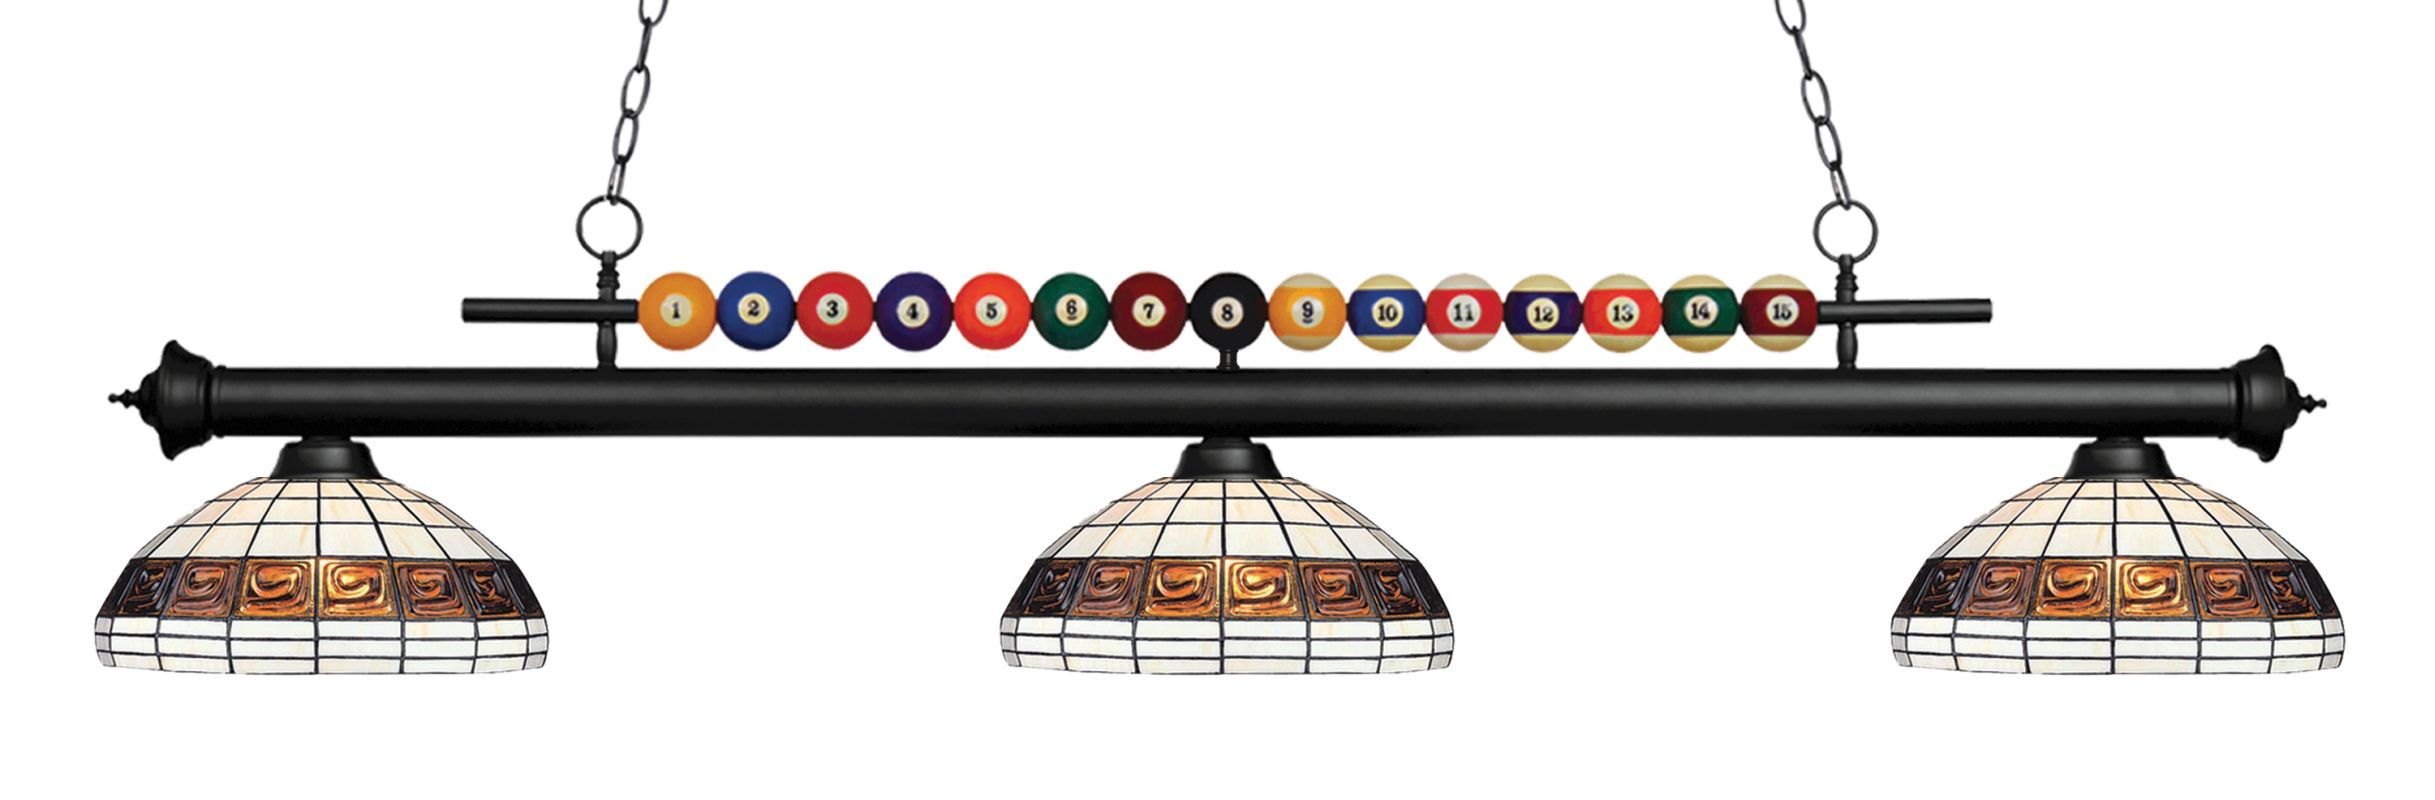 Z-Lite 170-F14-1 Shark 3 Light Billiard Chandelier with Multi-Colored Sale $990.00 ITEM: bci2630359 ID#:170MB-F14-1 UPC: 685659049206 :